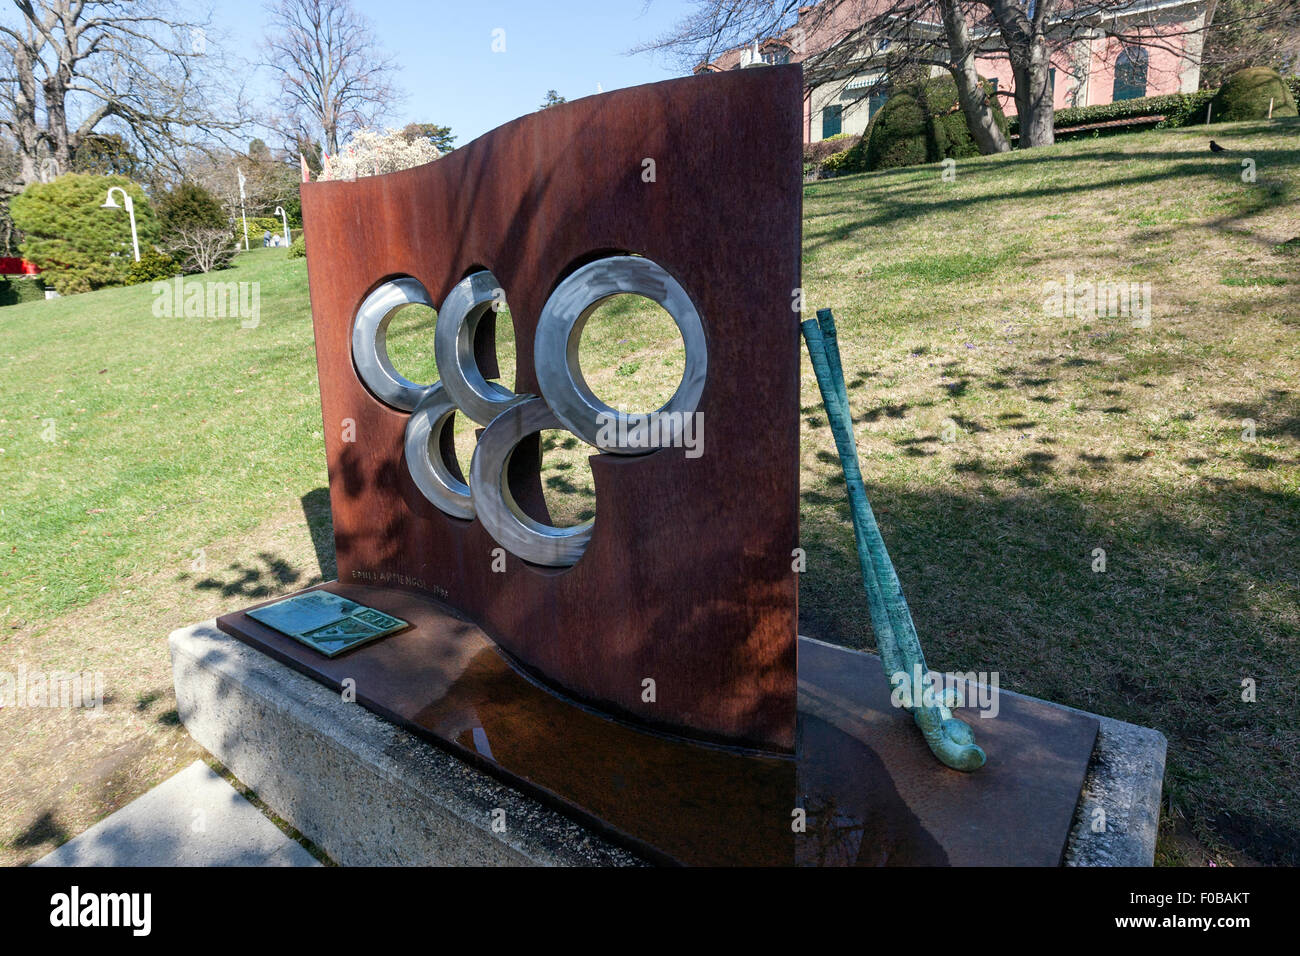 Drapeau olympique by Emilio Armengol, International Olympic Committee, Olympic Garden Lausanne Stock Photo